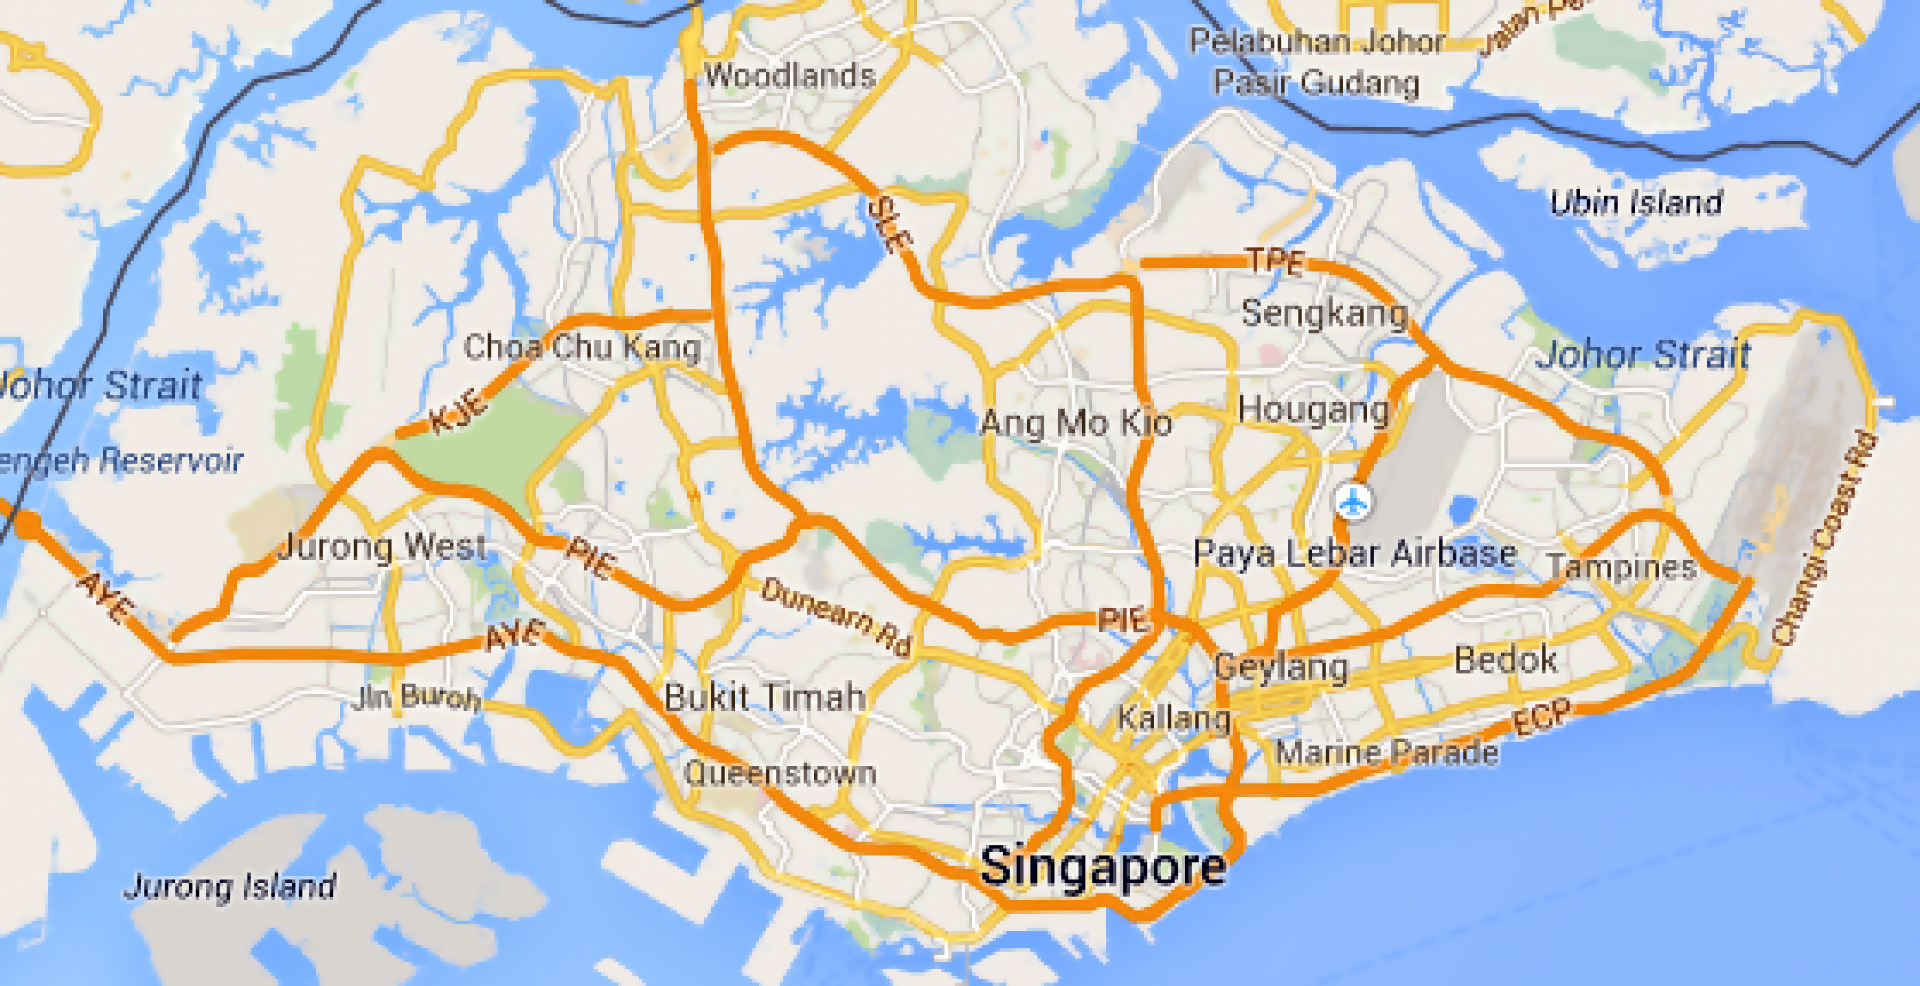 Road map of Singapore Singapore Asia Mapsland Maps of the World